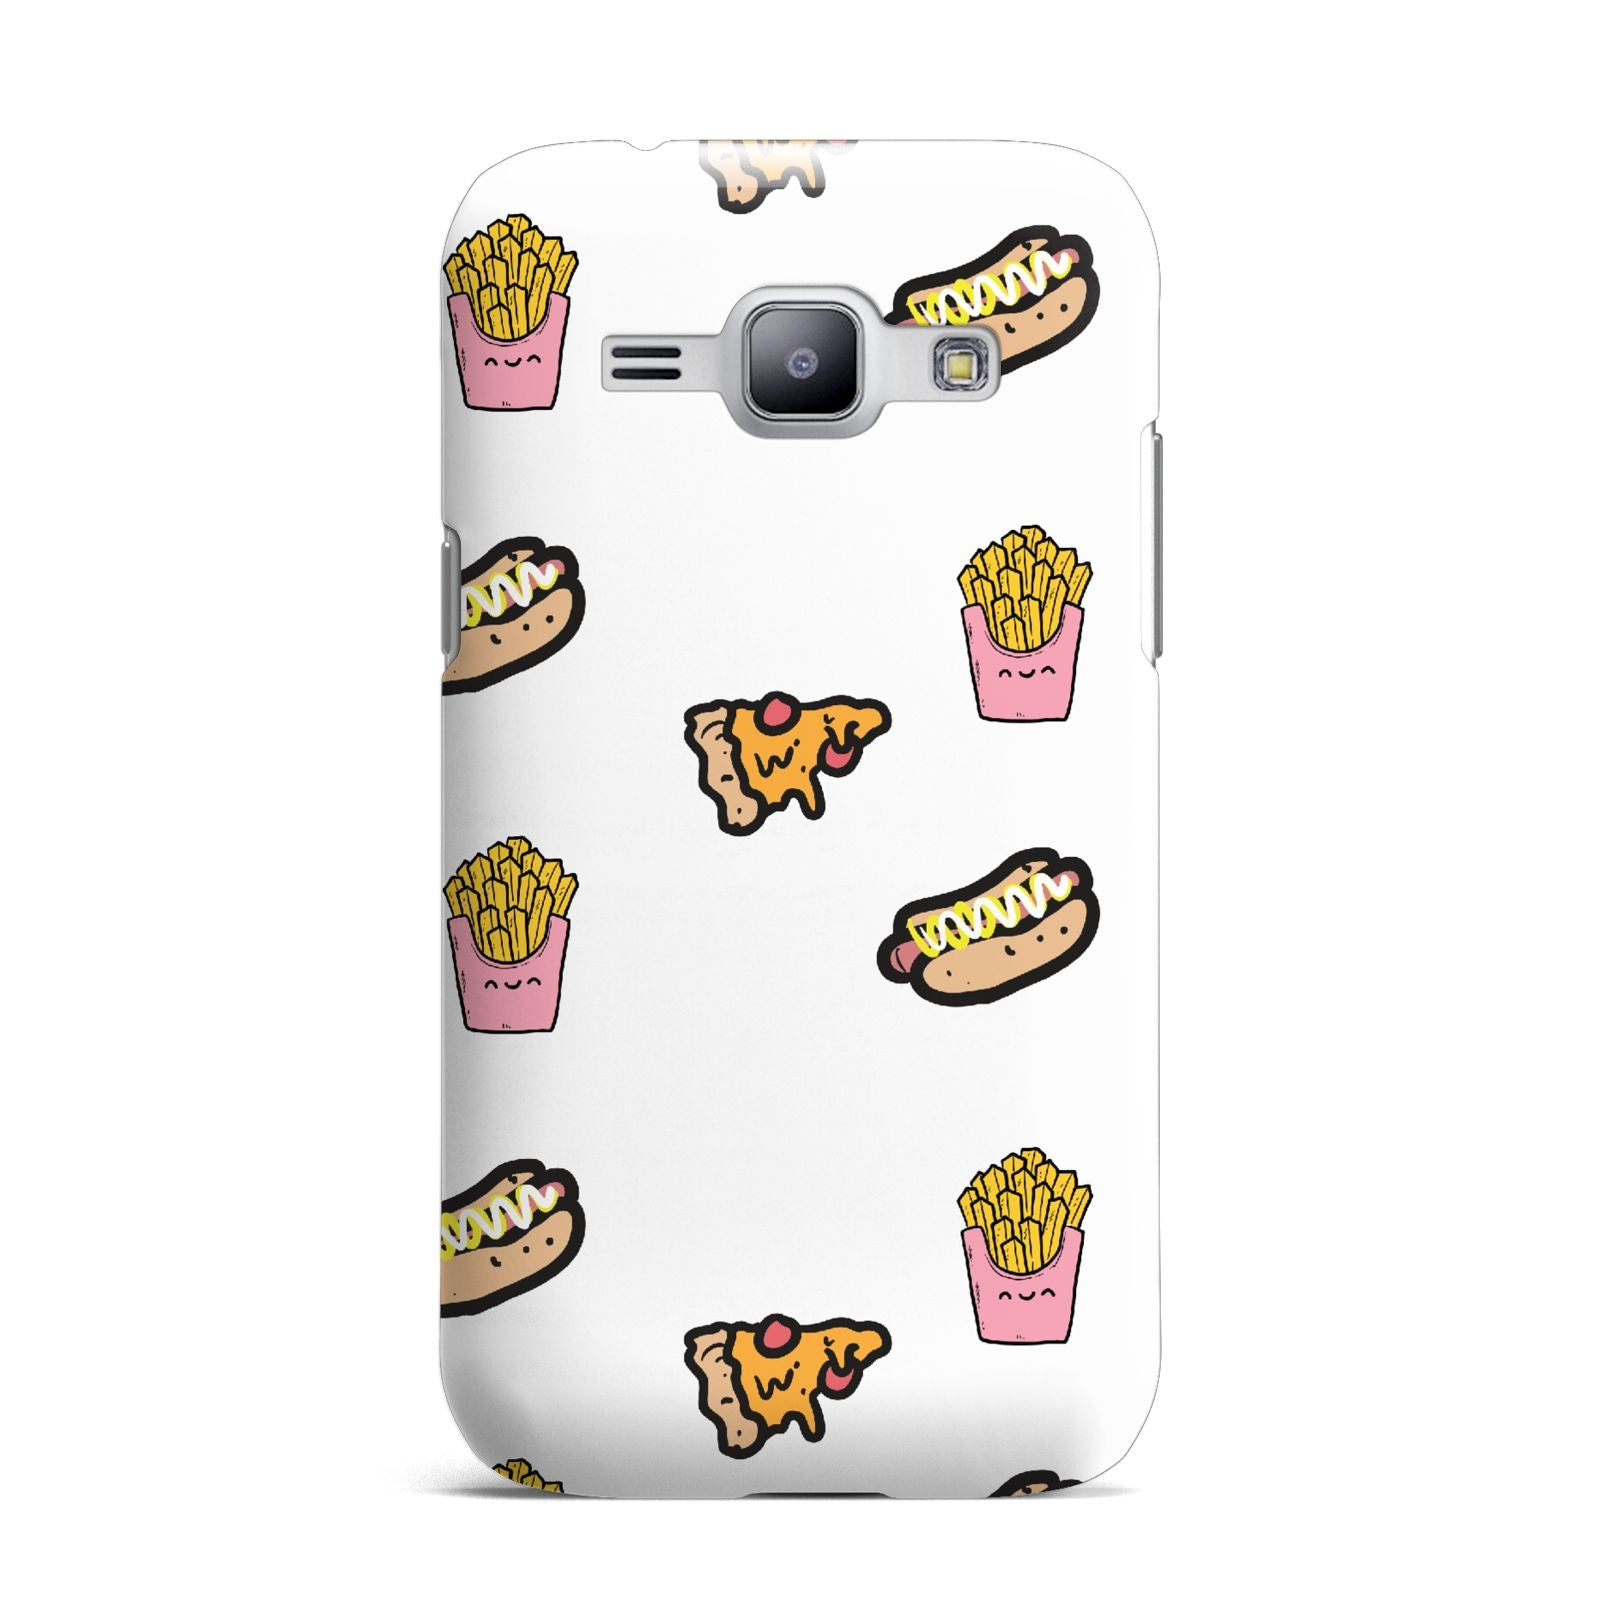 Fries Pizza Hot Dog Samsung Galaxy J1 2015 Case